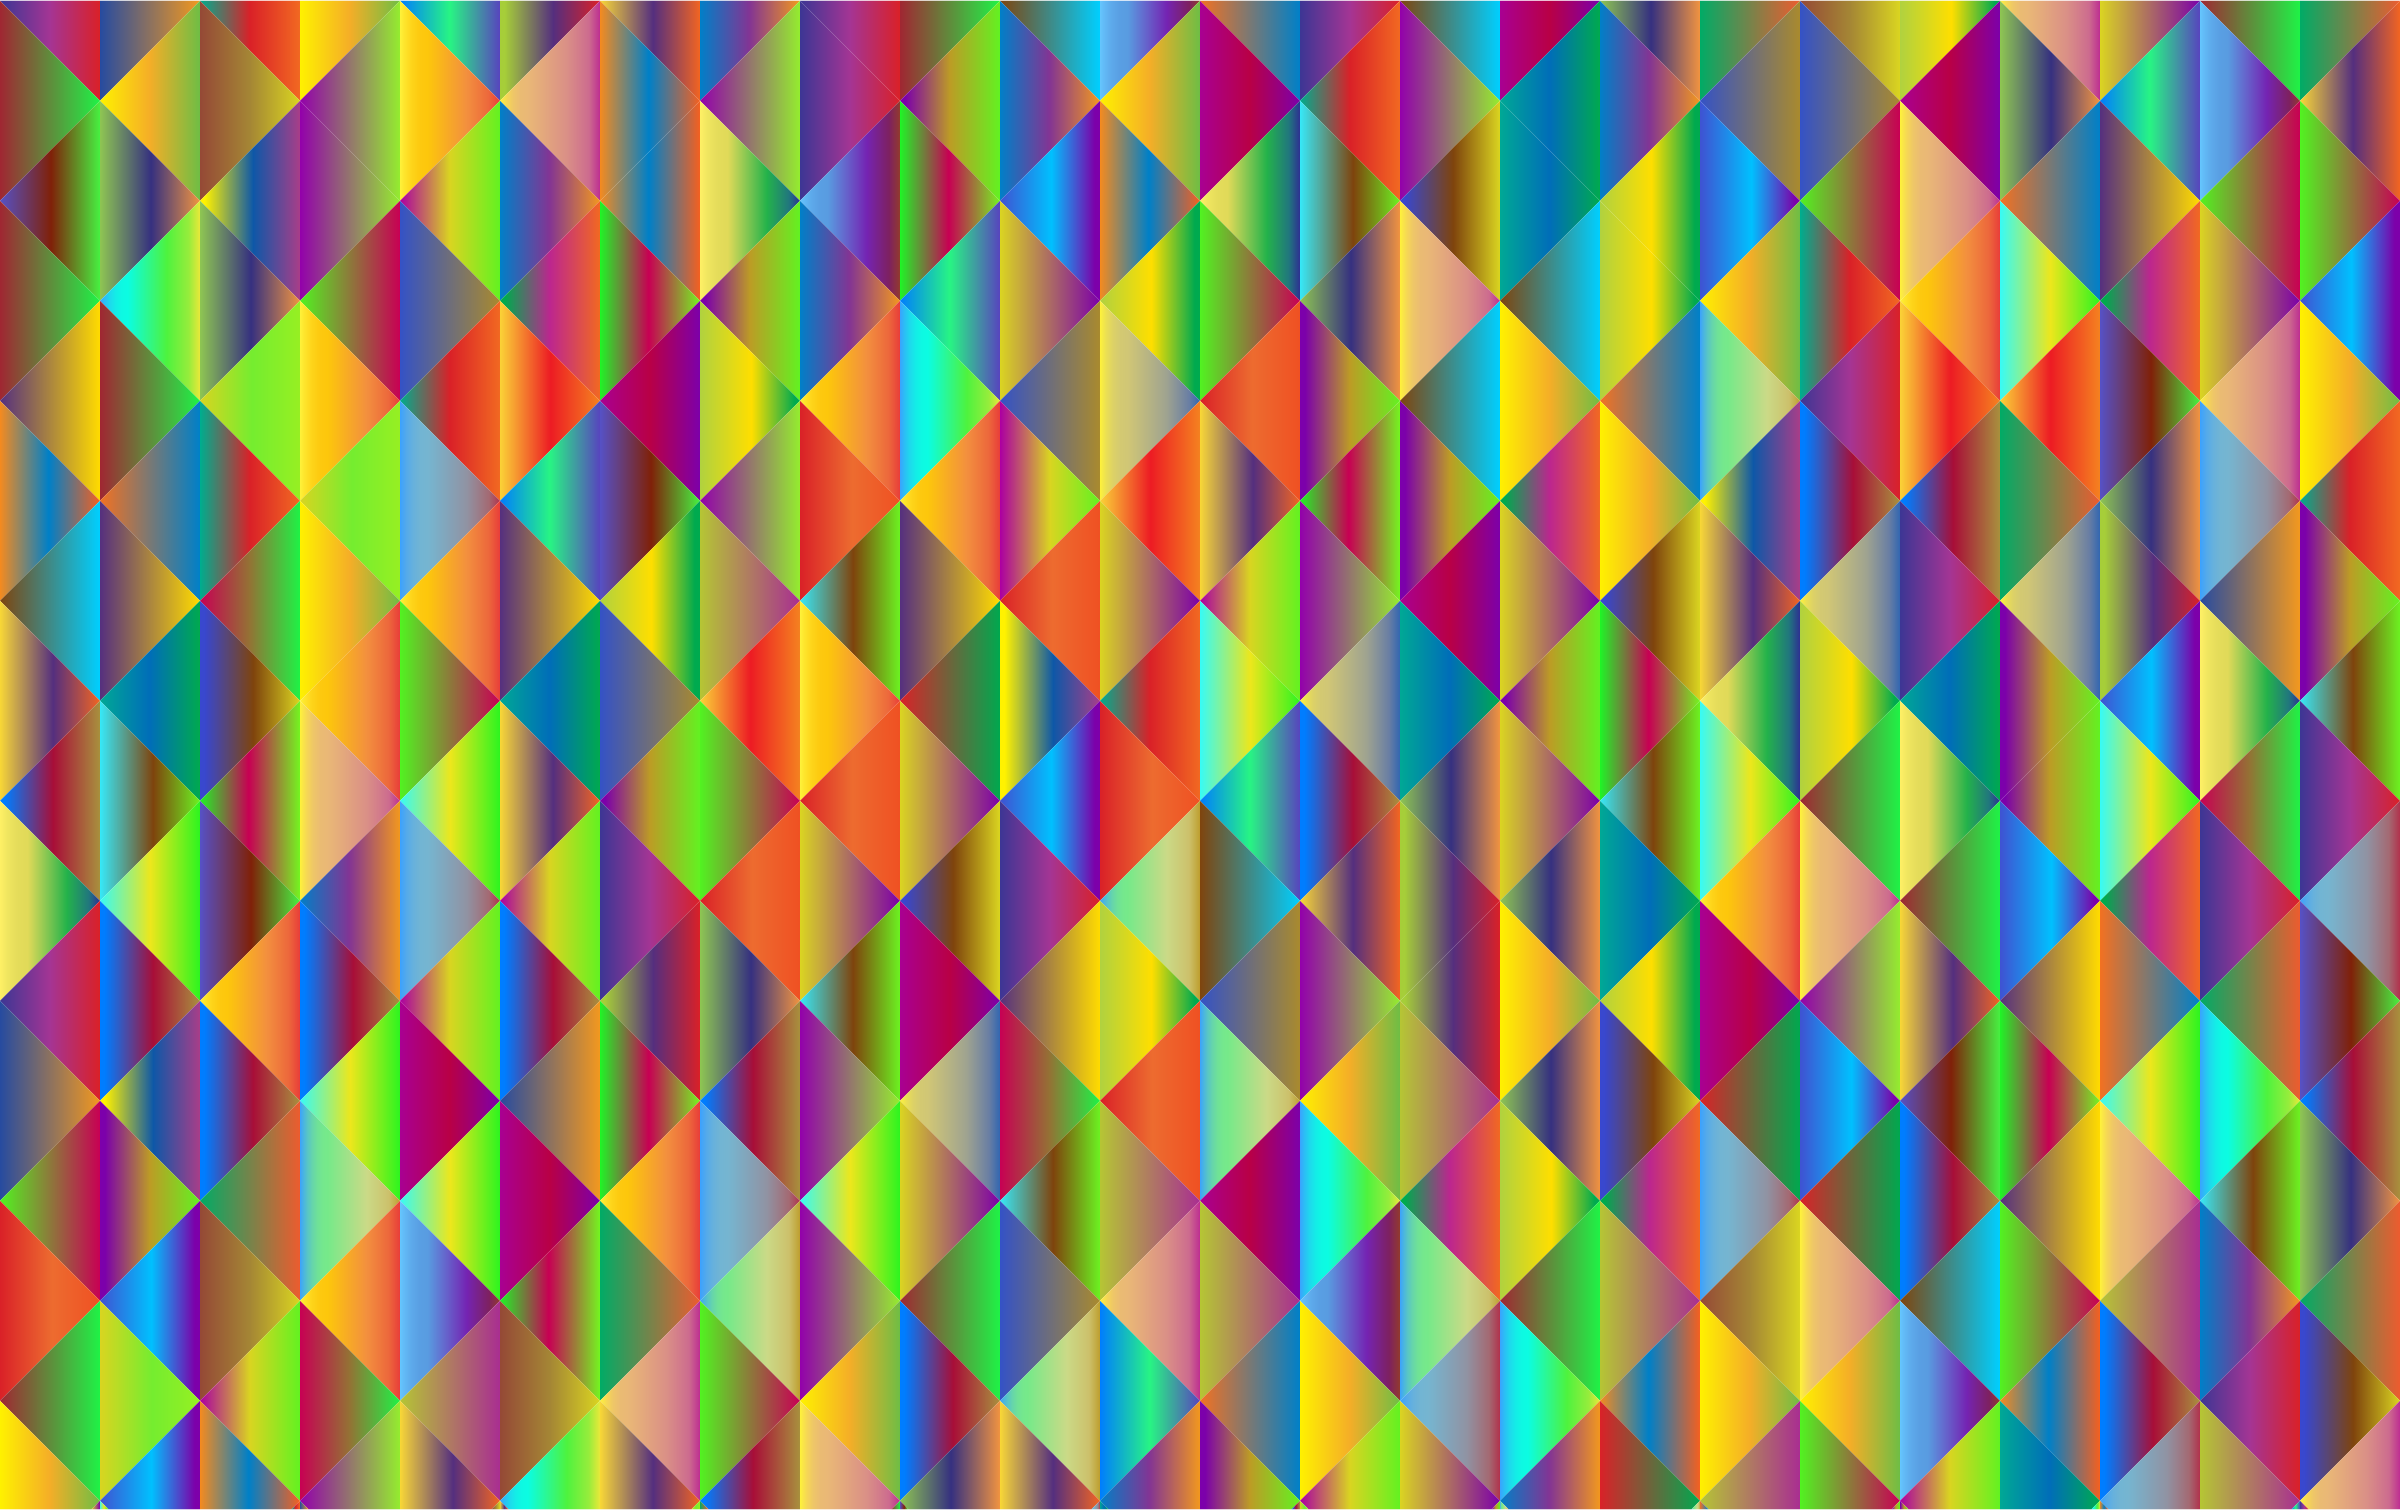 Prismatic Triangular Background Design Mark II 3 by GDJ